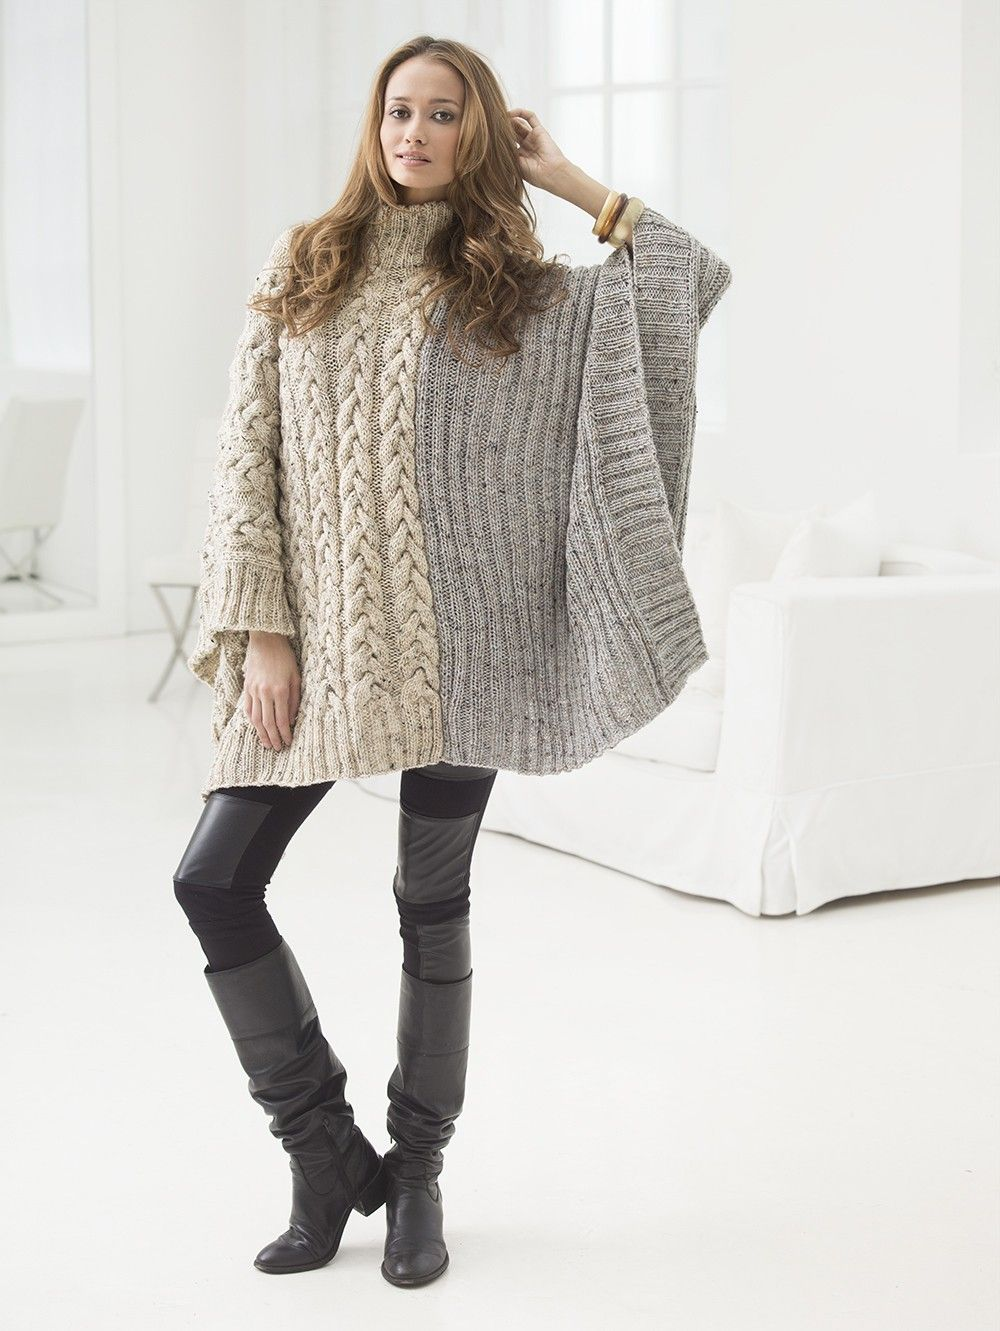 Cabled Poncho Knitting Pattern and Kit - Knit this poncho on sale ...